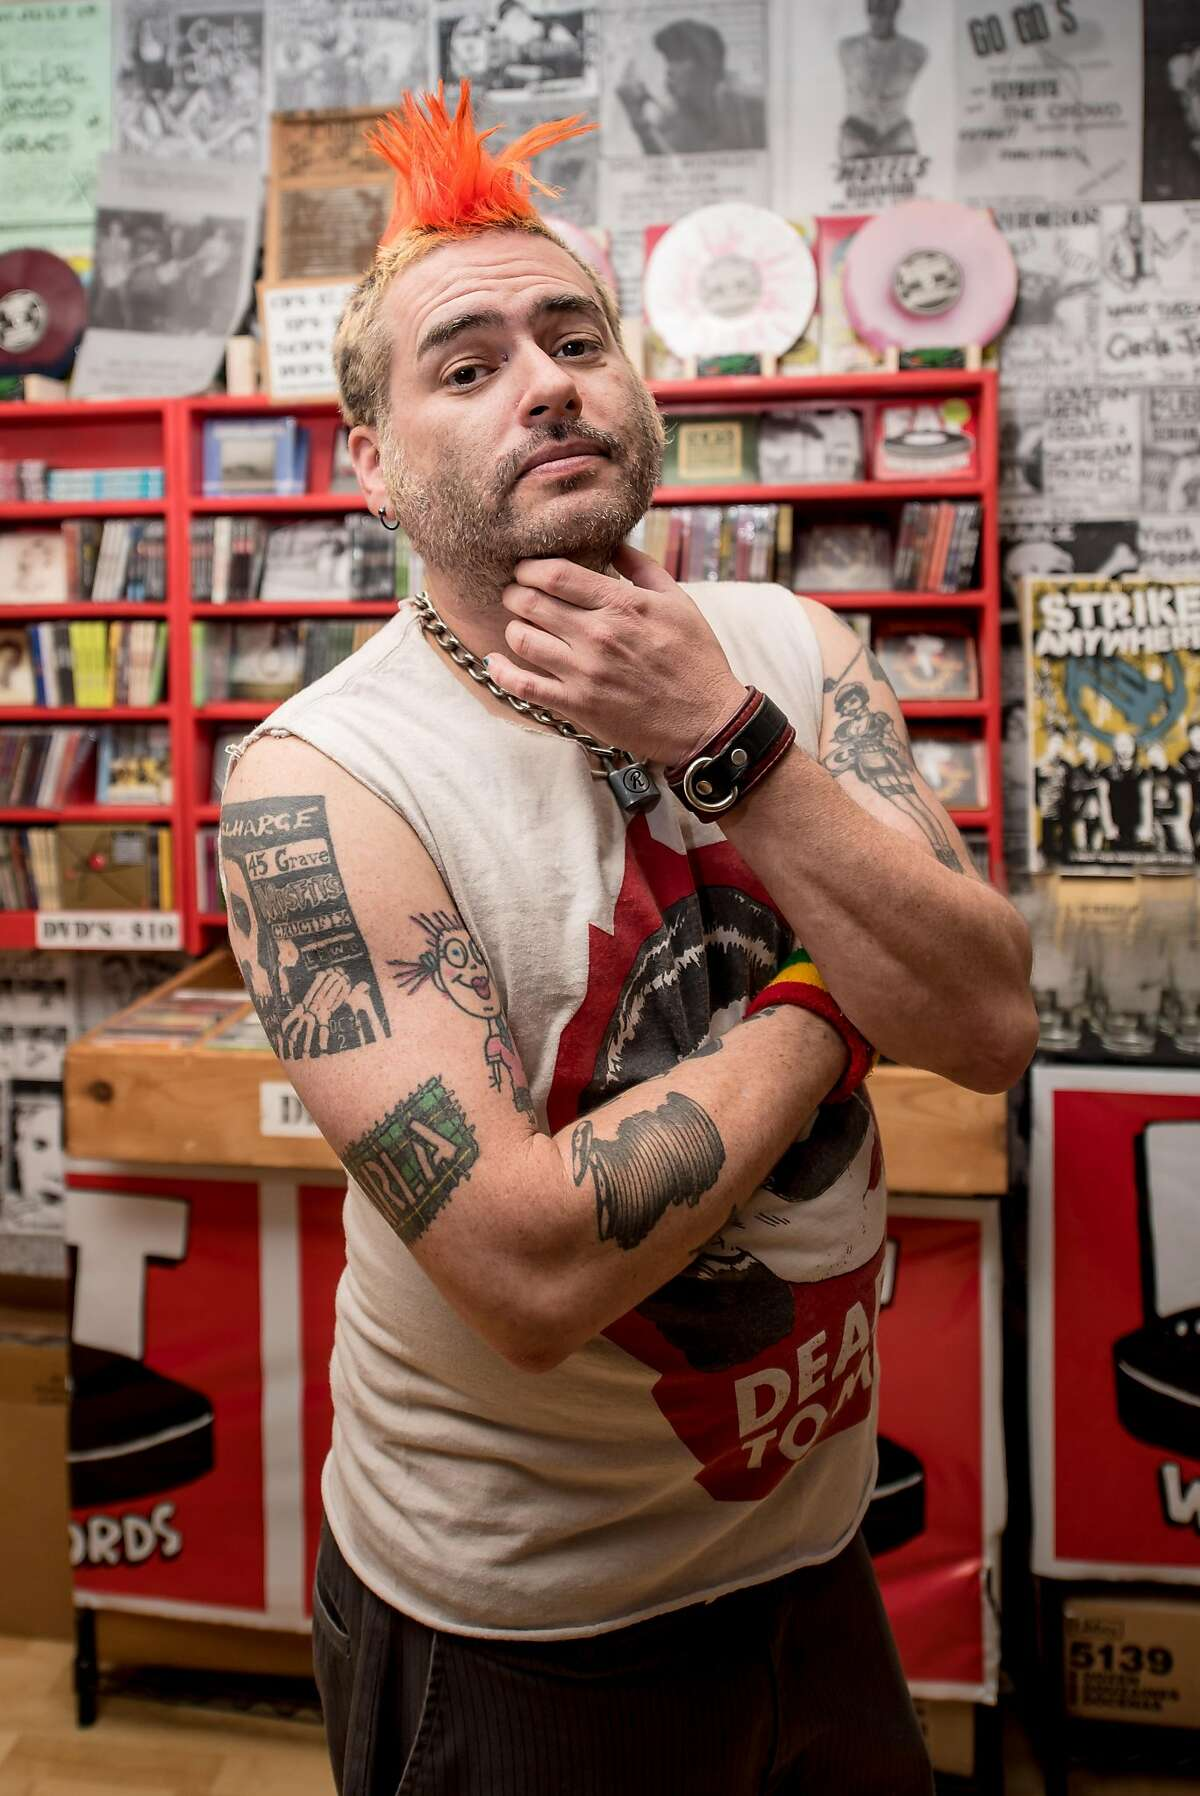 Fat Mike, frontman for NOFX, has collaborated with Stone Brewing for not only a Punk in Drublic hoppy lager, but a Punk in Drublic traveling music and beer festival.